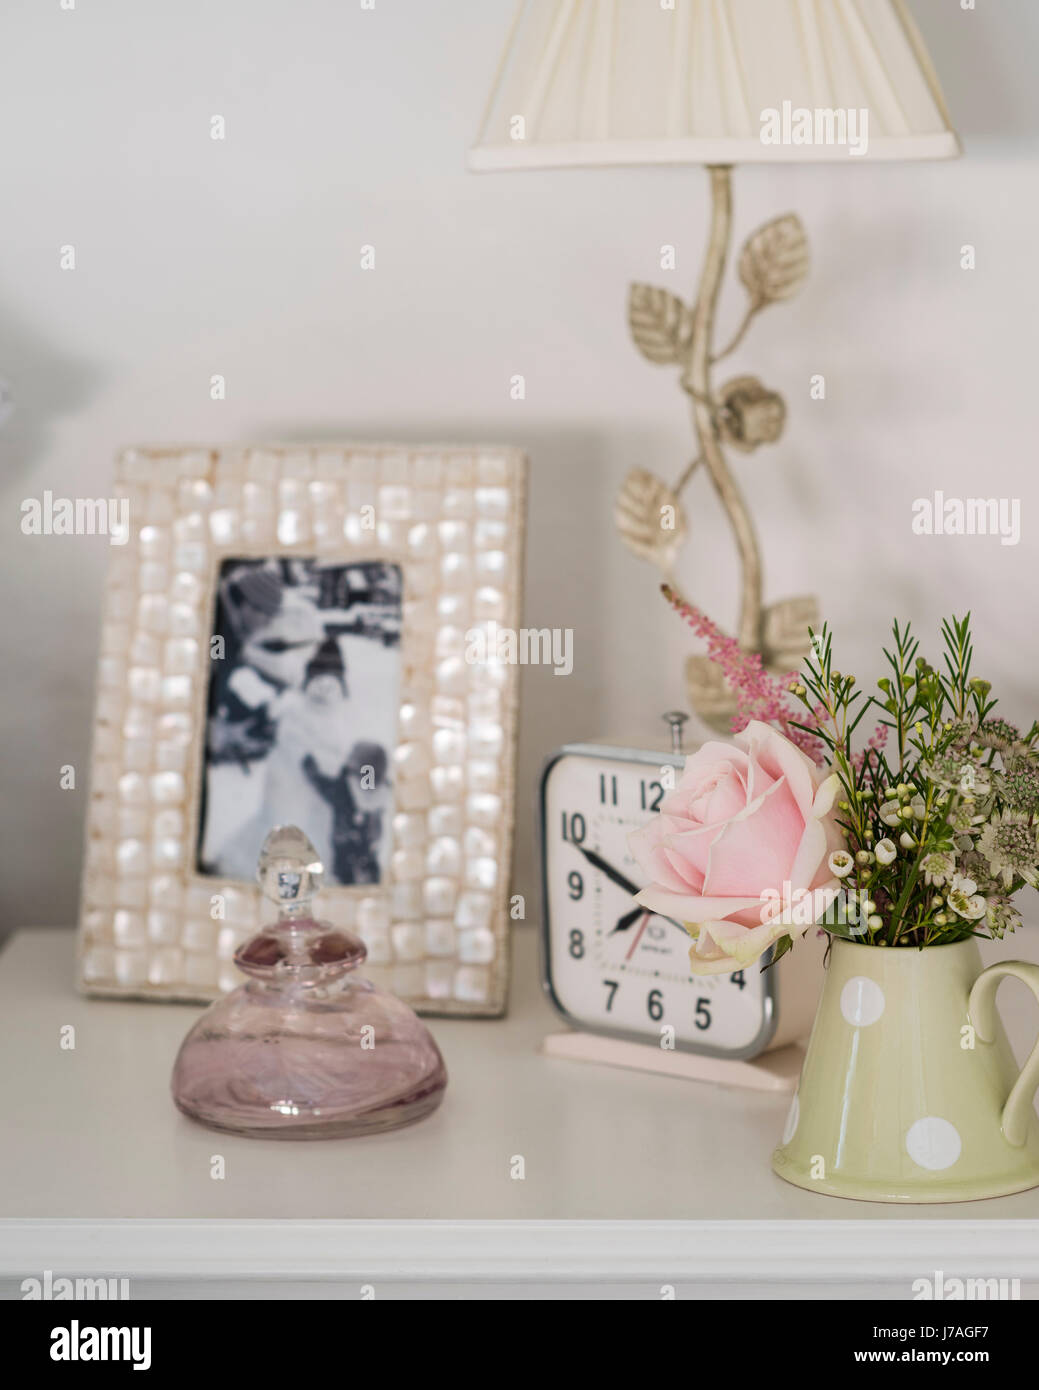 Detail of bedside table with alarm clock, framed photograph and posey of flowers - Stock Image